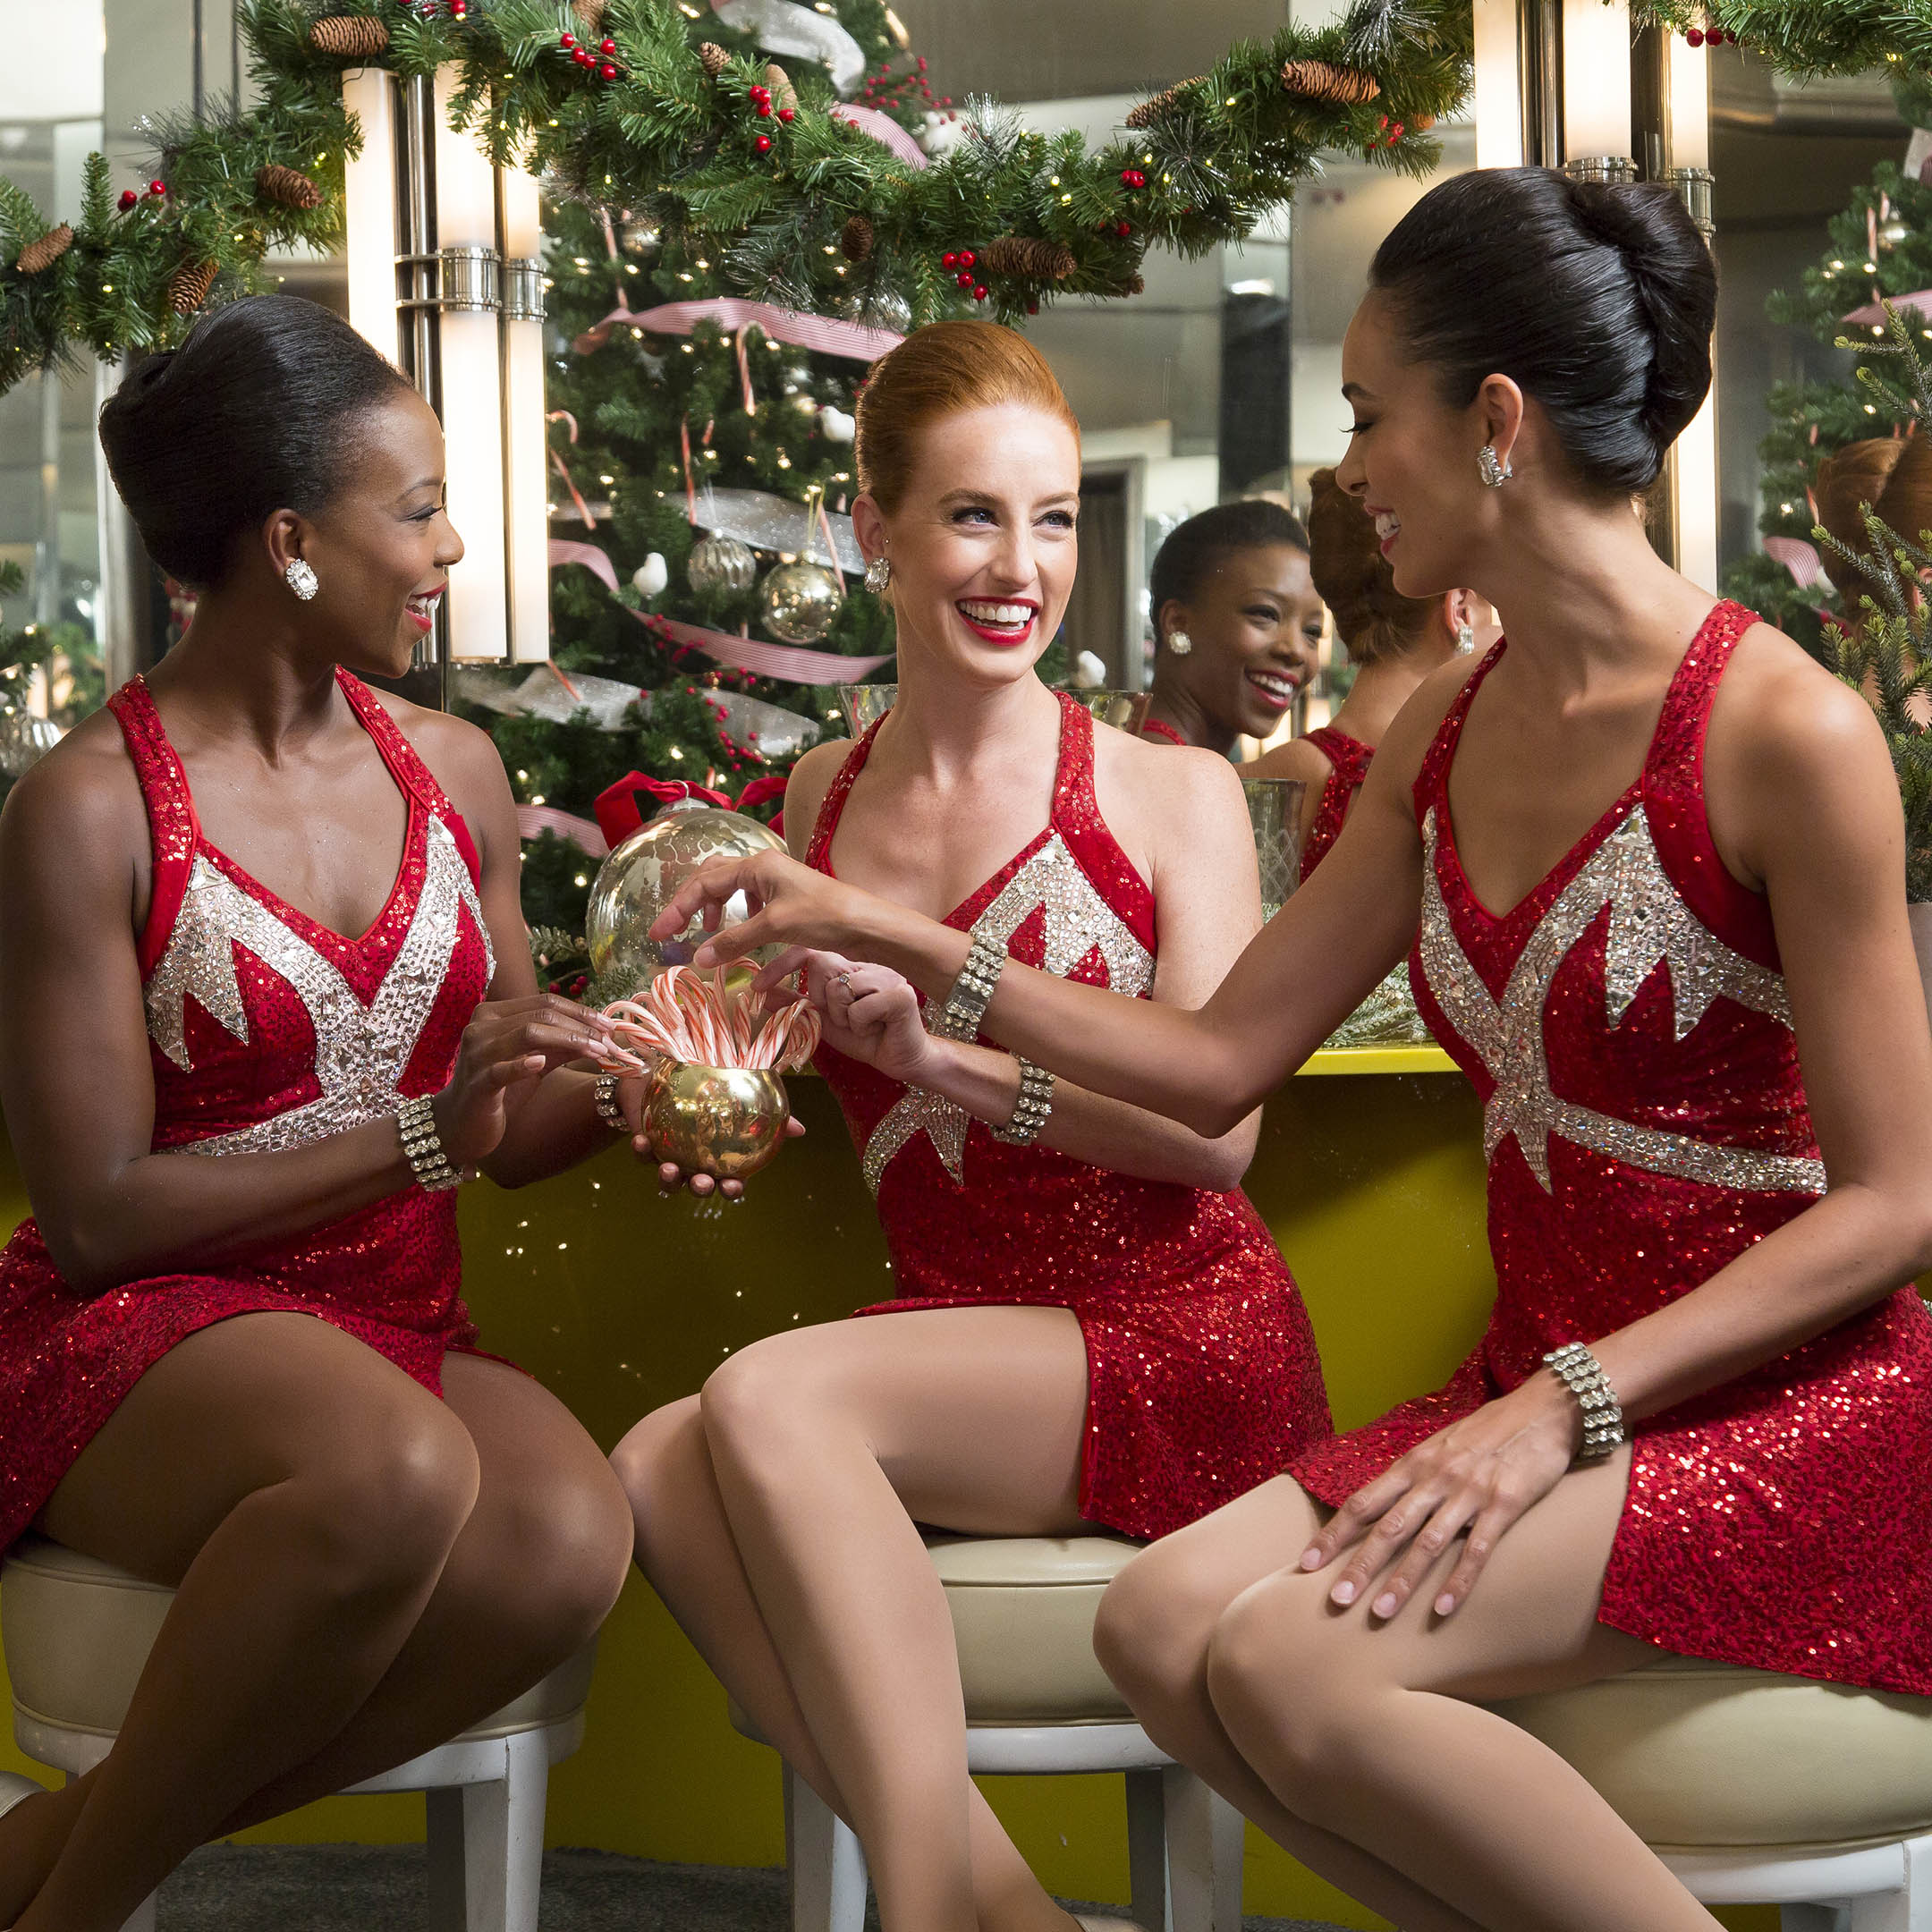 d1ebe4a5928 4 Rockettes-Inspired Outfits to Wear This Holiday Season